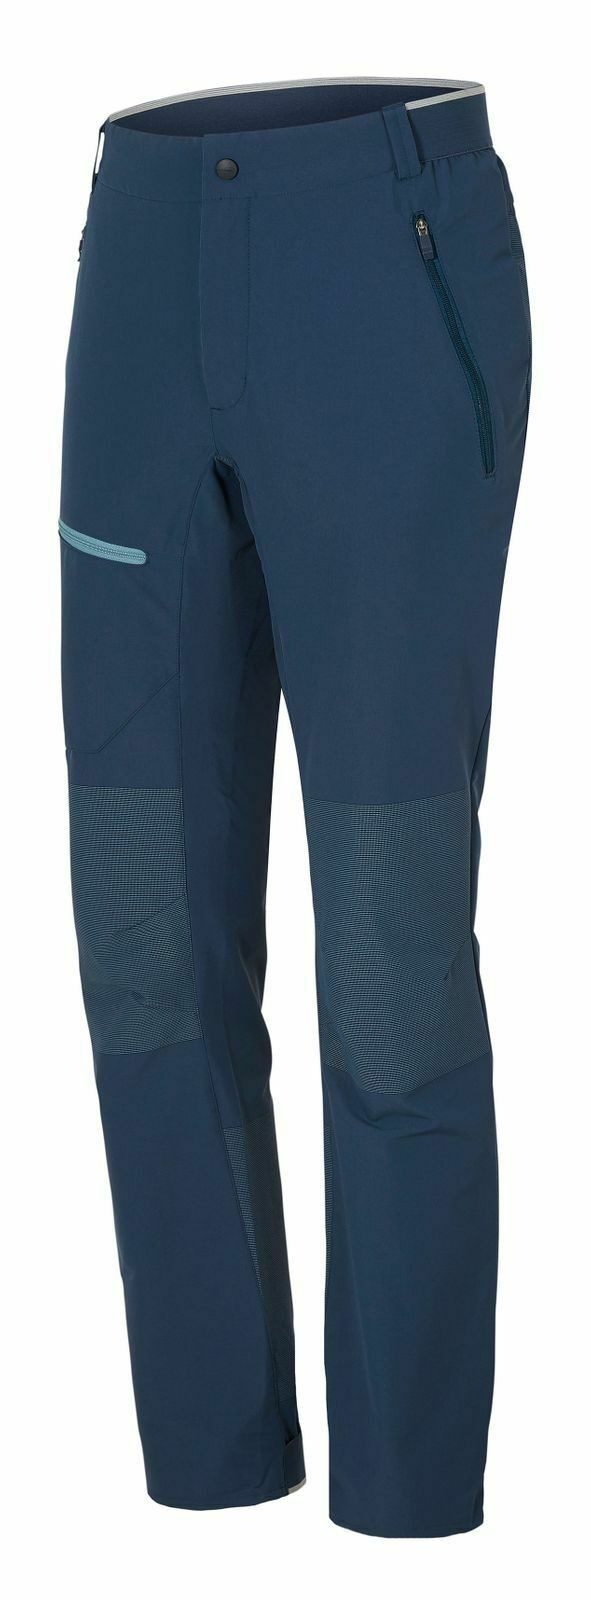 Ziener Men's Cycling Leisure  Functional Trousers Long Narvik Man bluee 199251 501  sale online save 70%